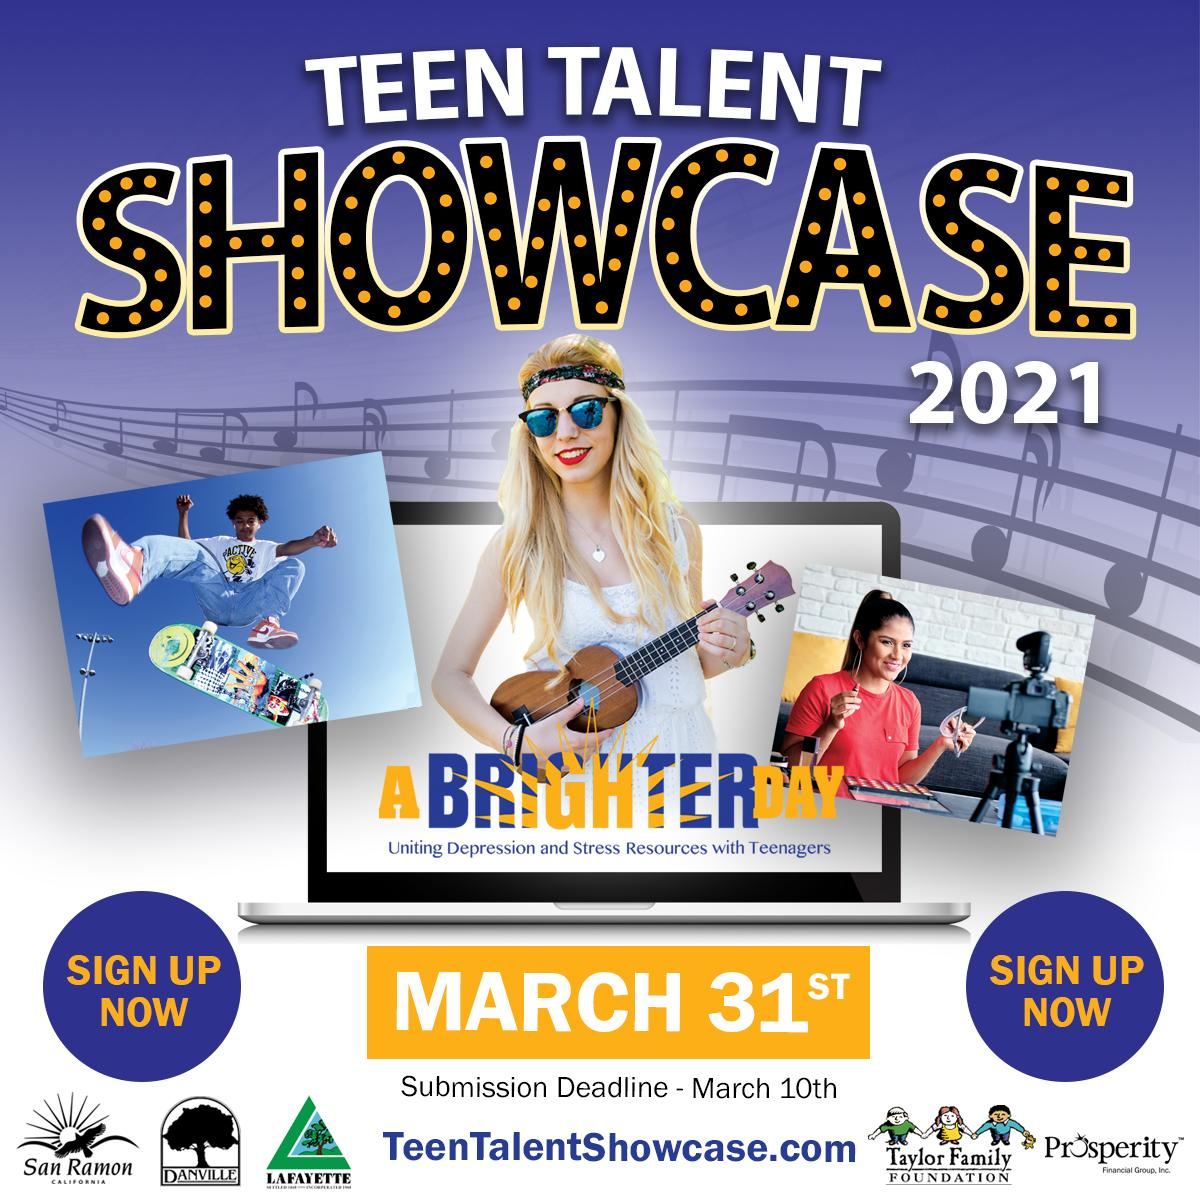 A Brighter Day Teen Talent Showcase